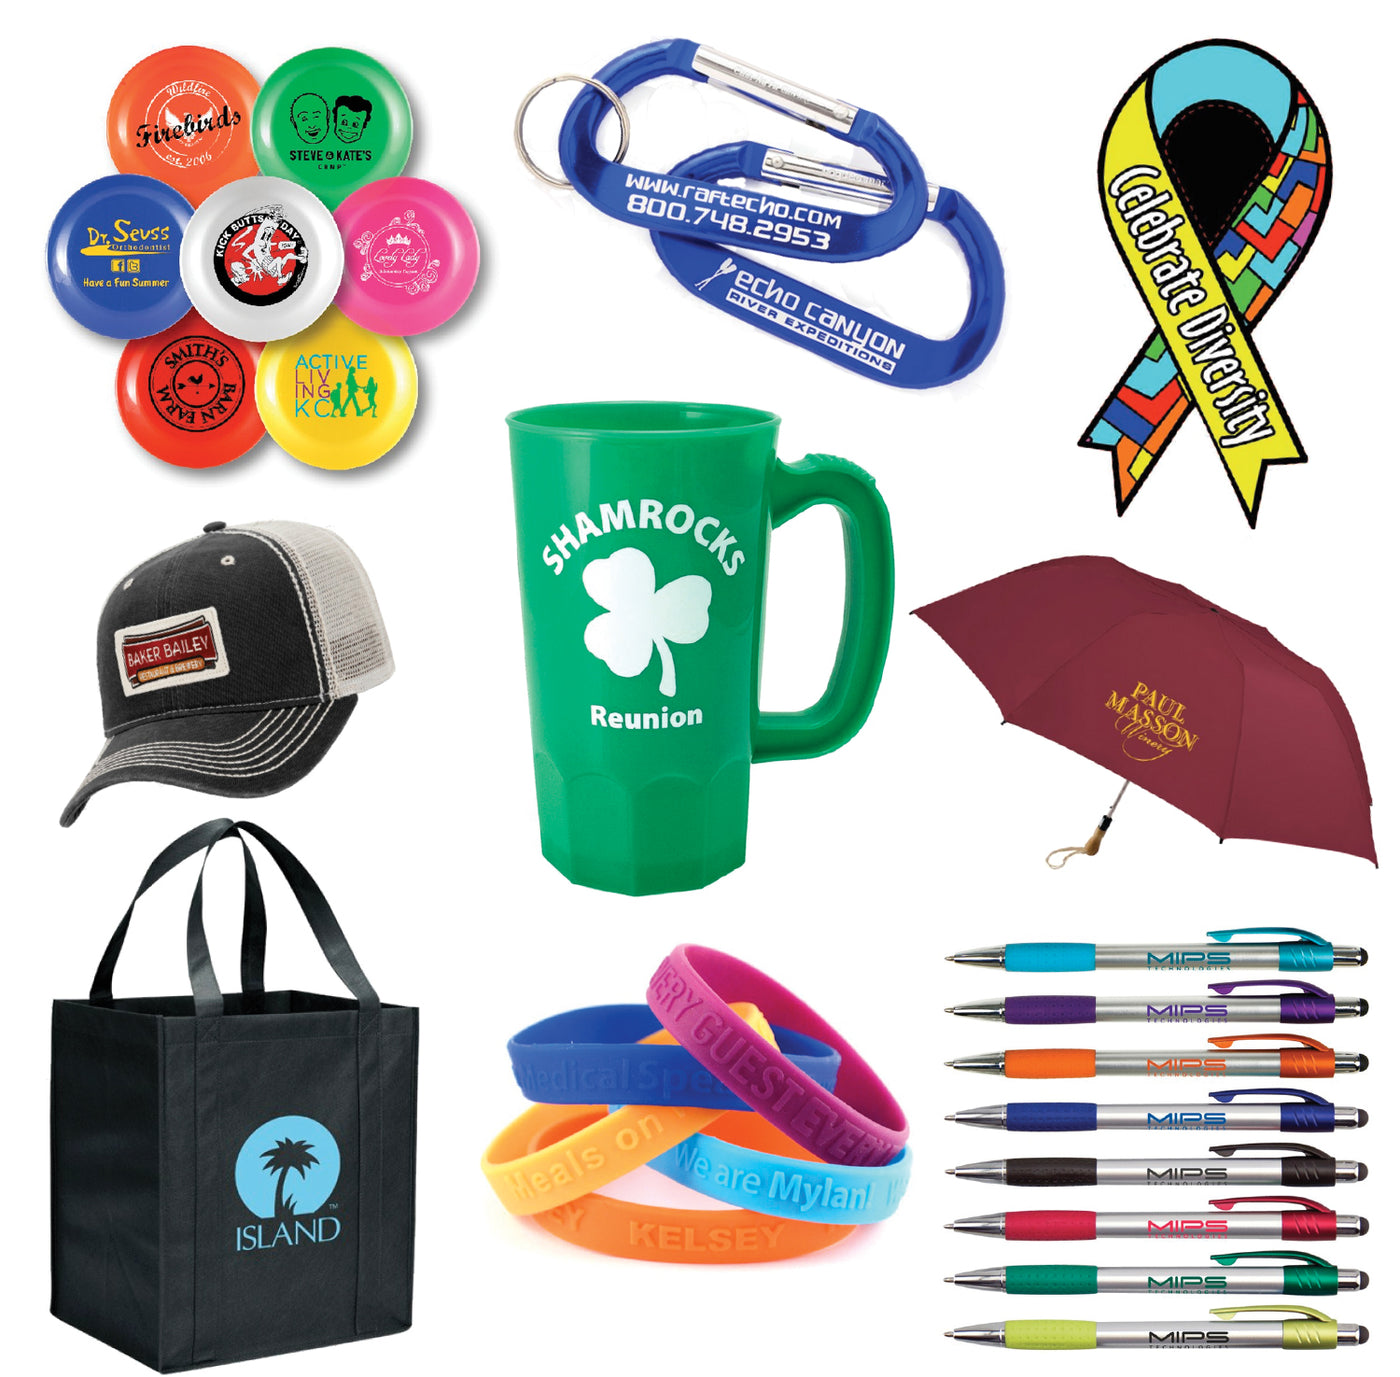 bf97a7cdf7 Promotional Products - Advanced Sportswear